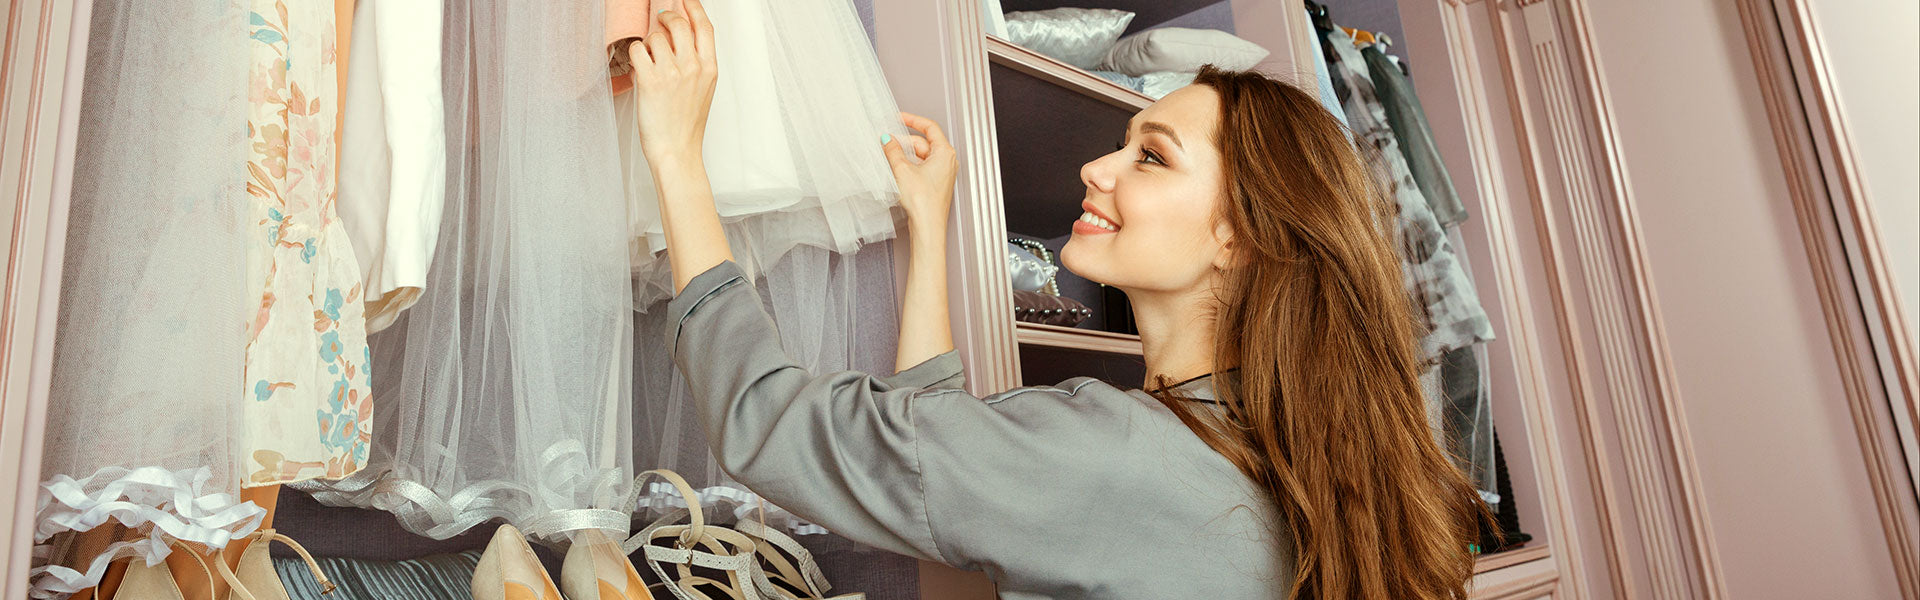 Declutter, Organize your closet, Closet organization